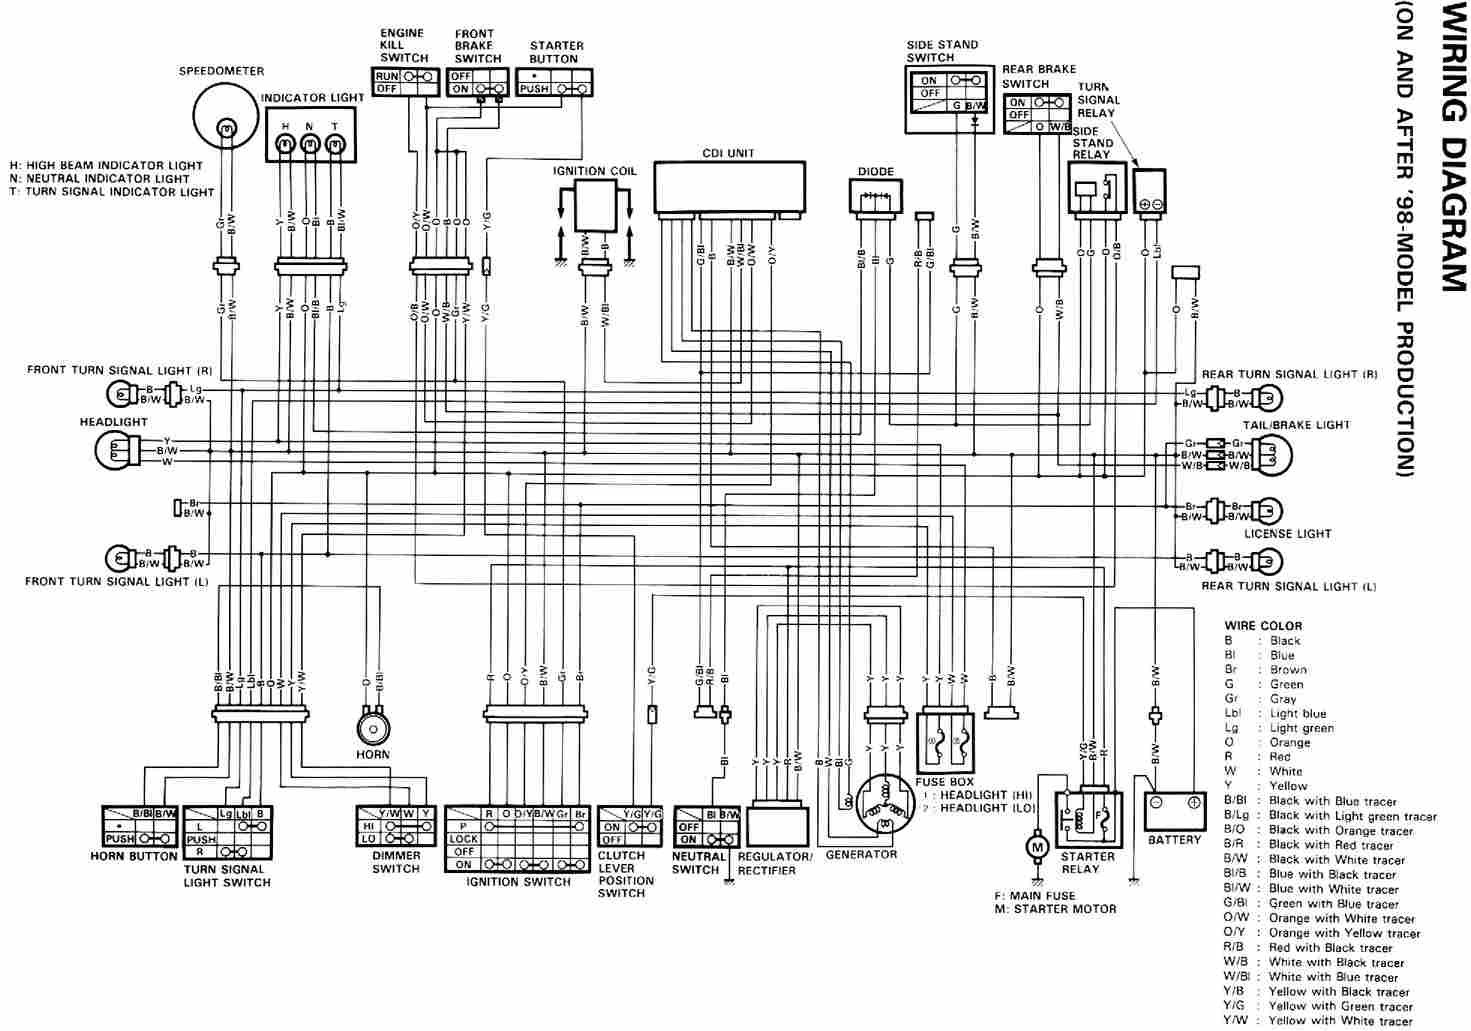 1984 vt700c wiring diagram series and parallel circuits